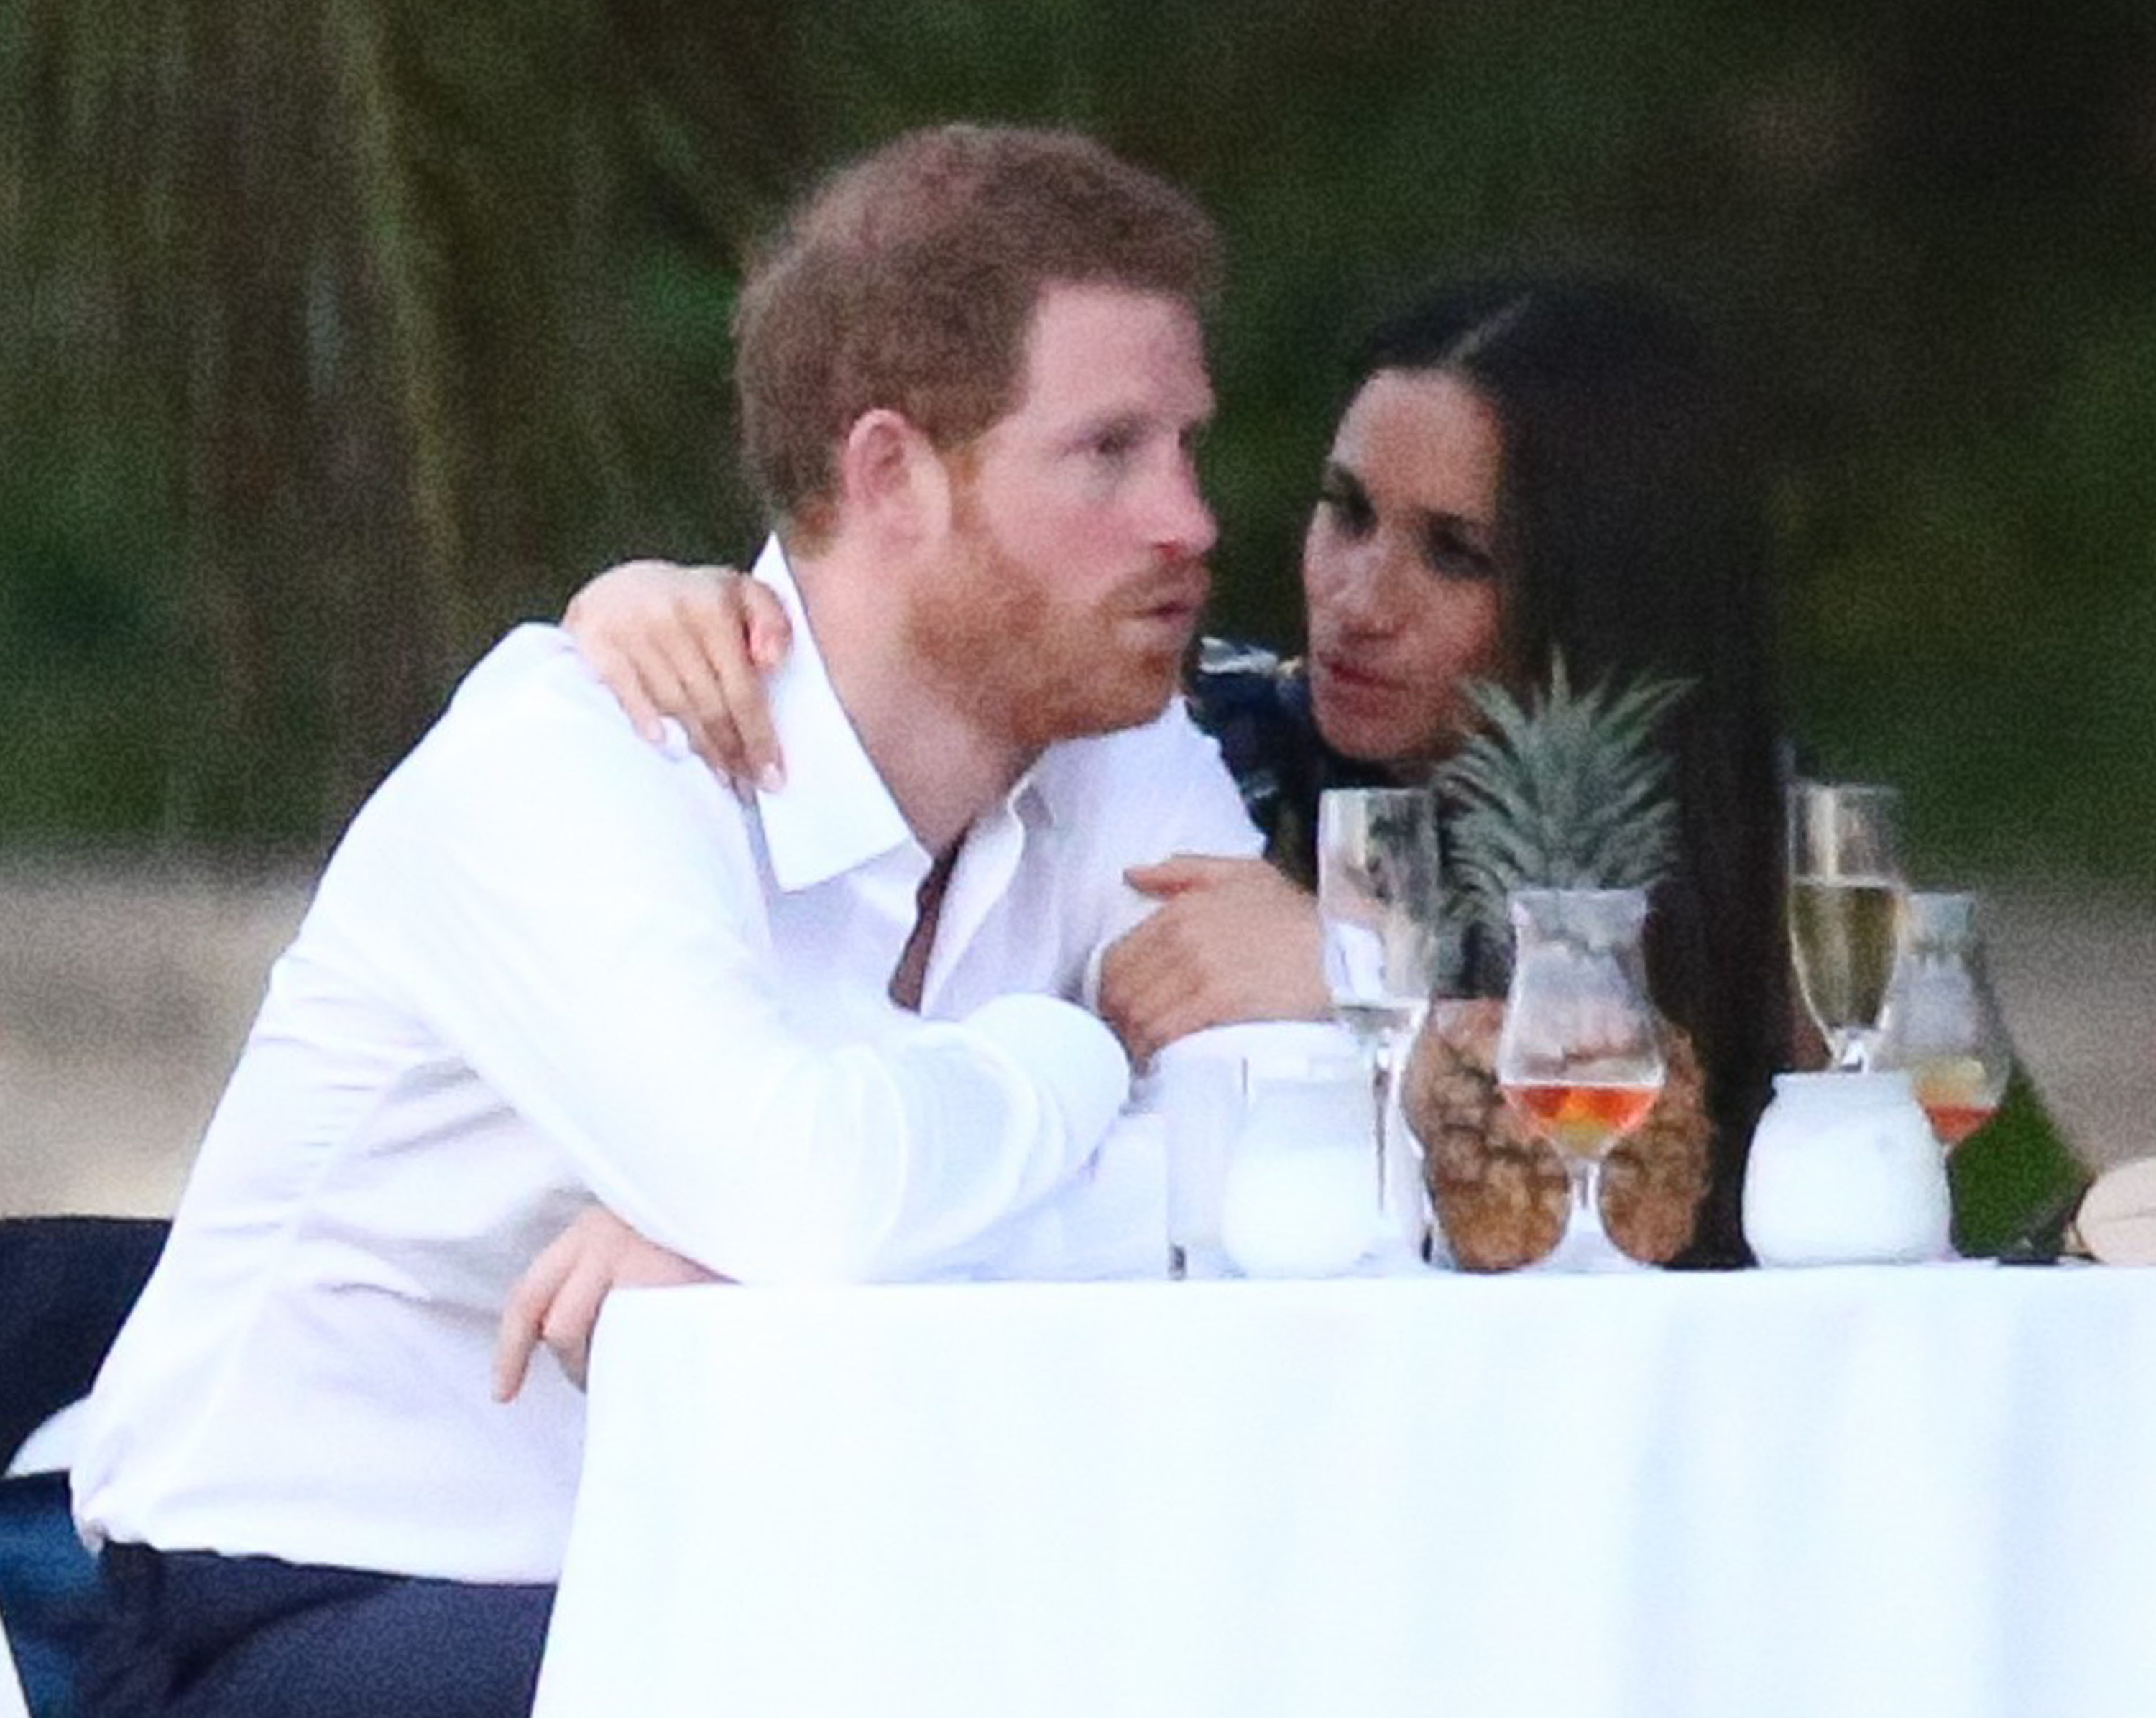 Prince Harry and Meghan Markle celebrate their first anniversary